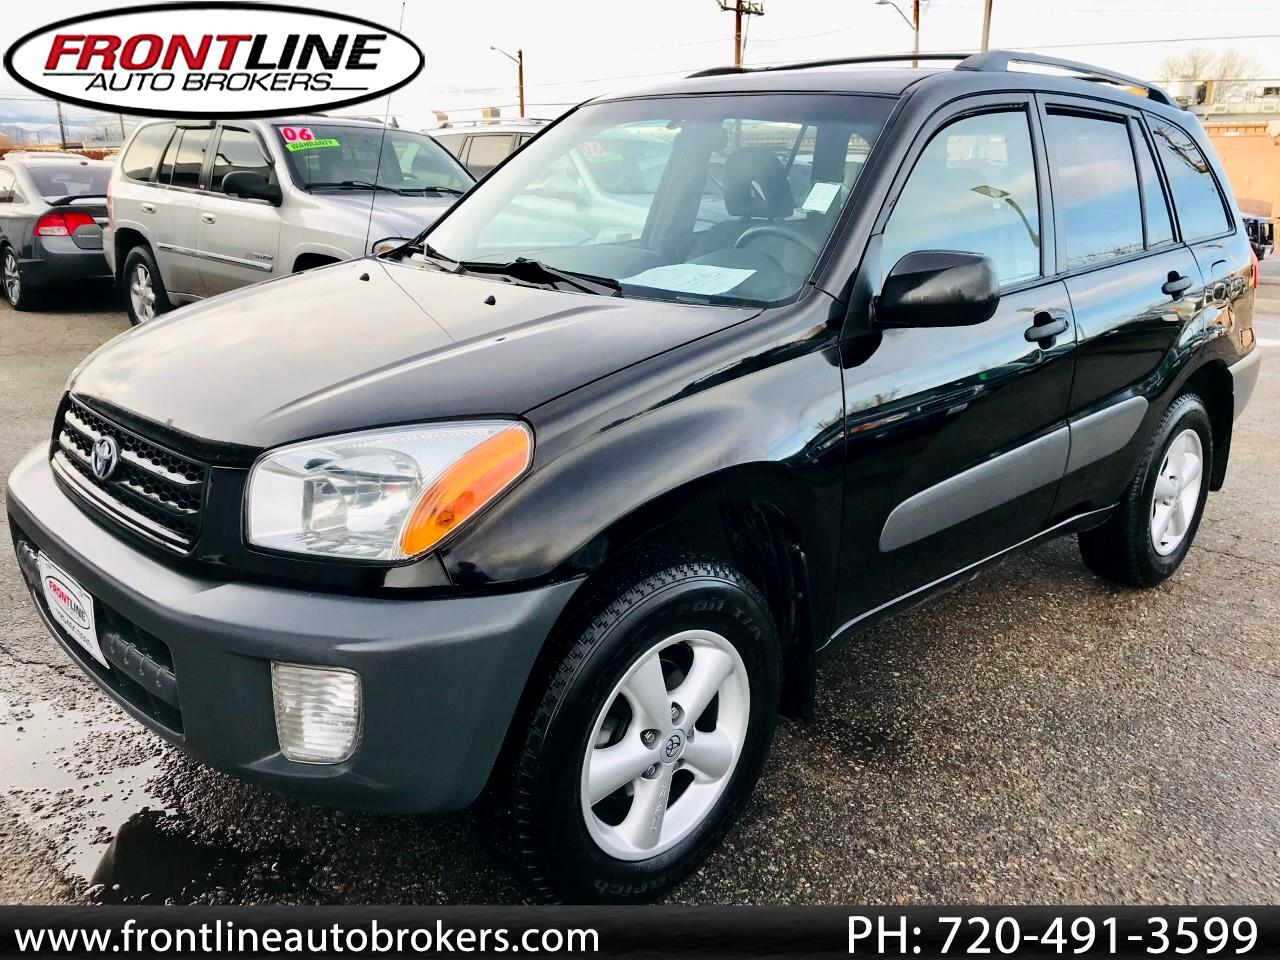 2001 Toyota RAV4 4dr Manual 4WD (Natl)